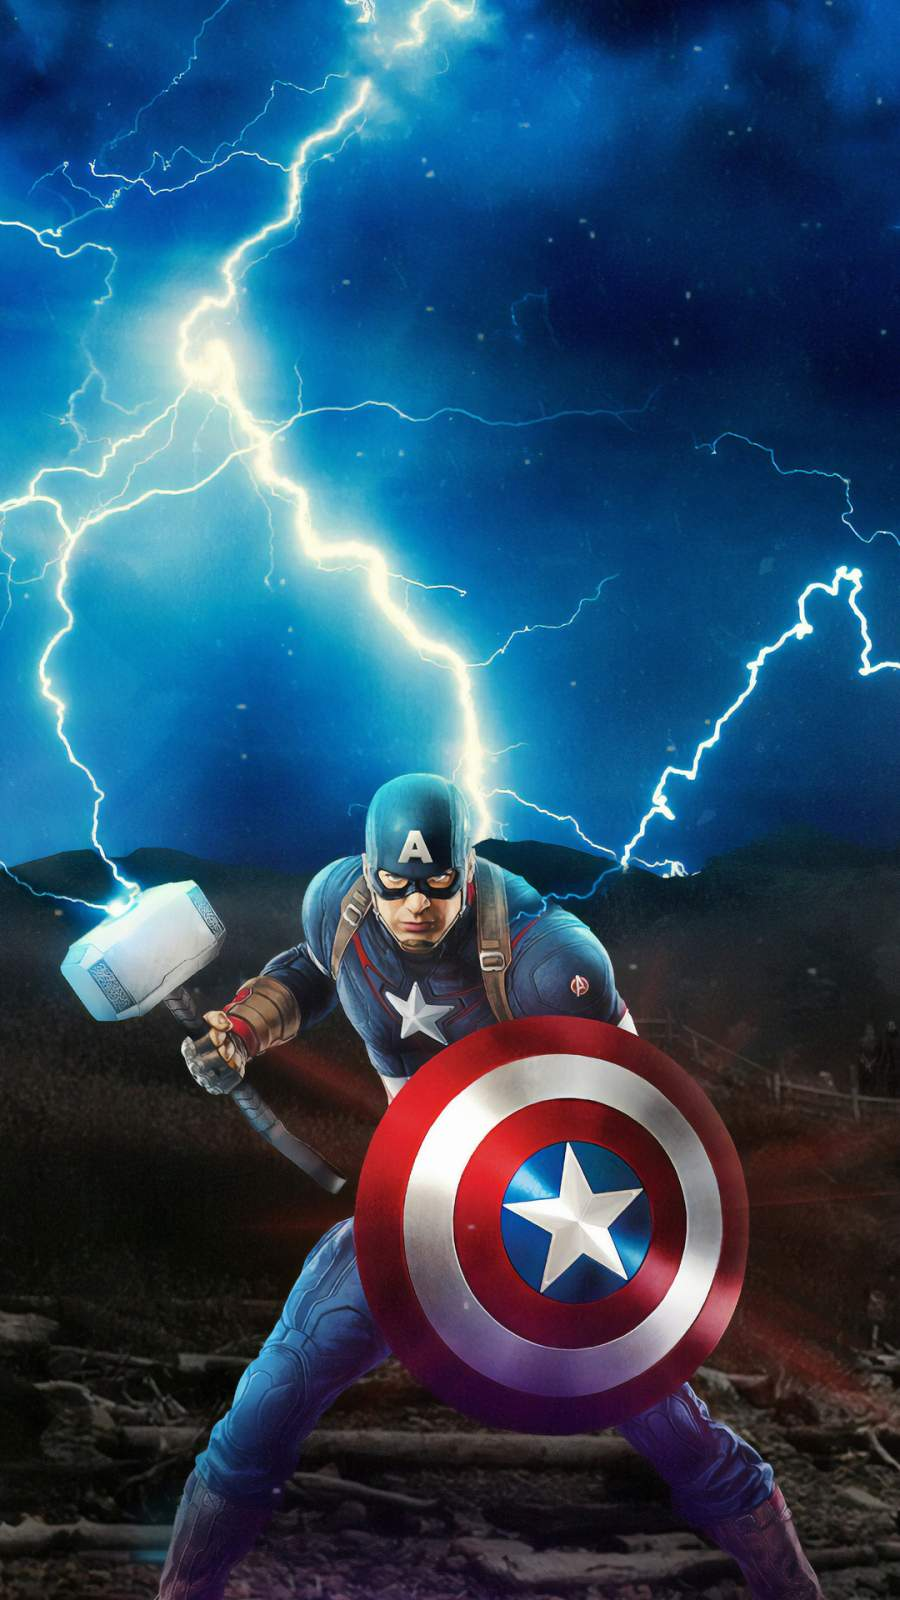 Captain America Mjolnir Avengers iPhone Wallpaper